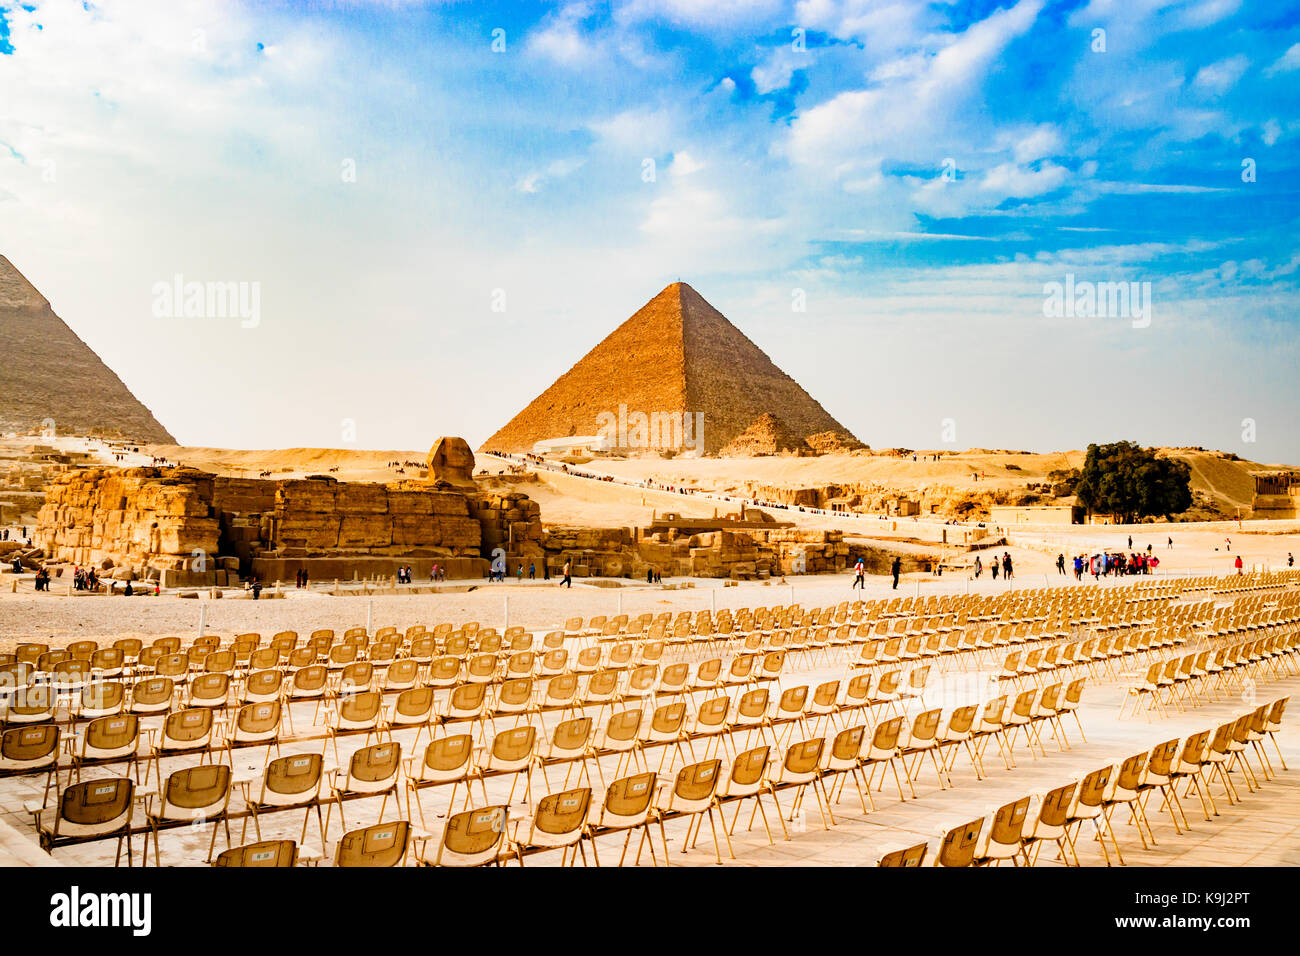 Chairs near the pyramid in Cairo, Egypt - Stock Image